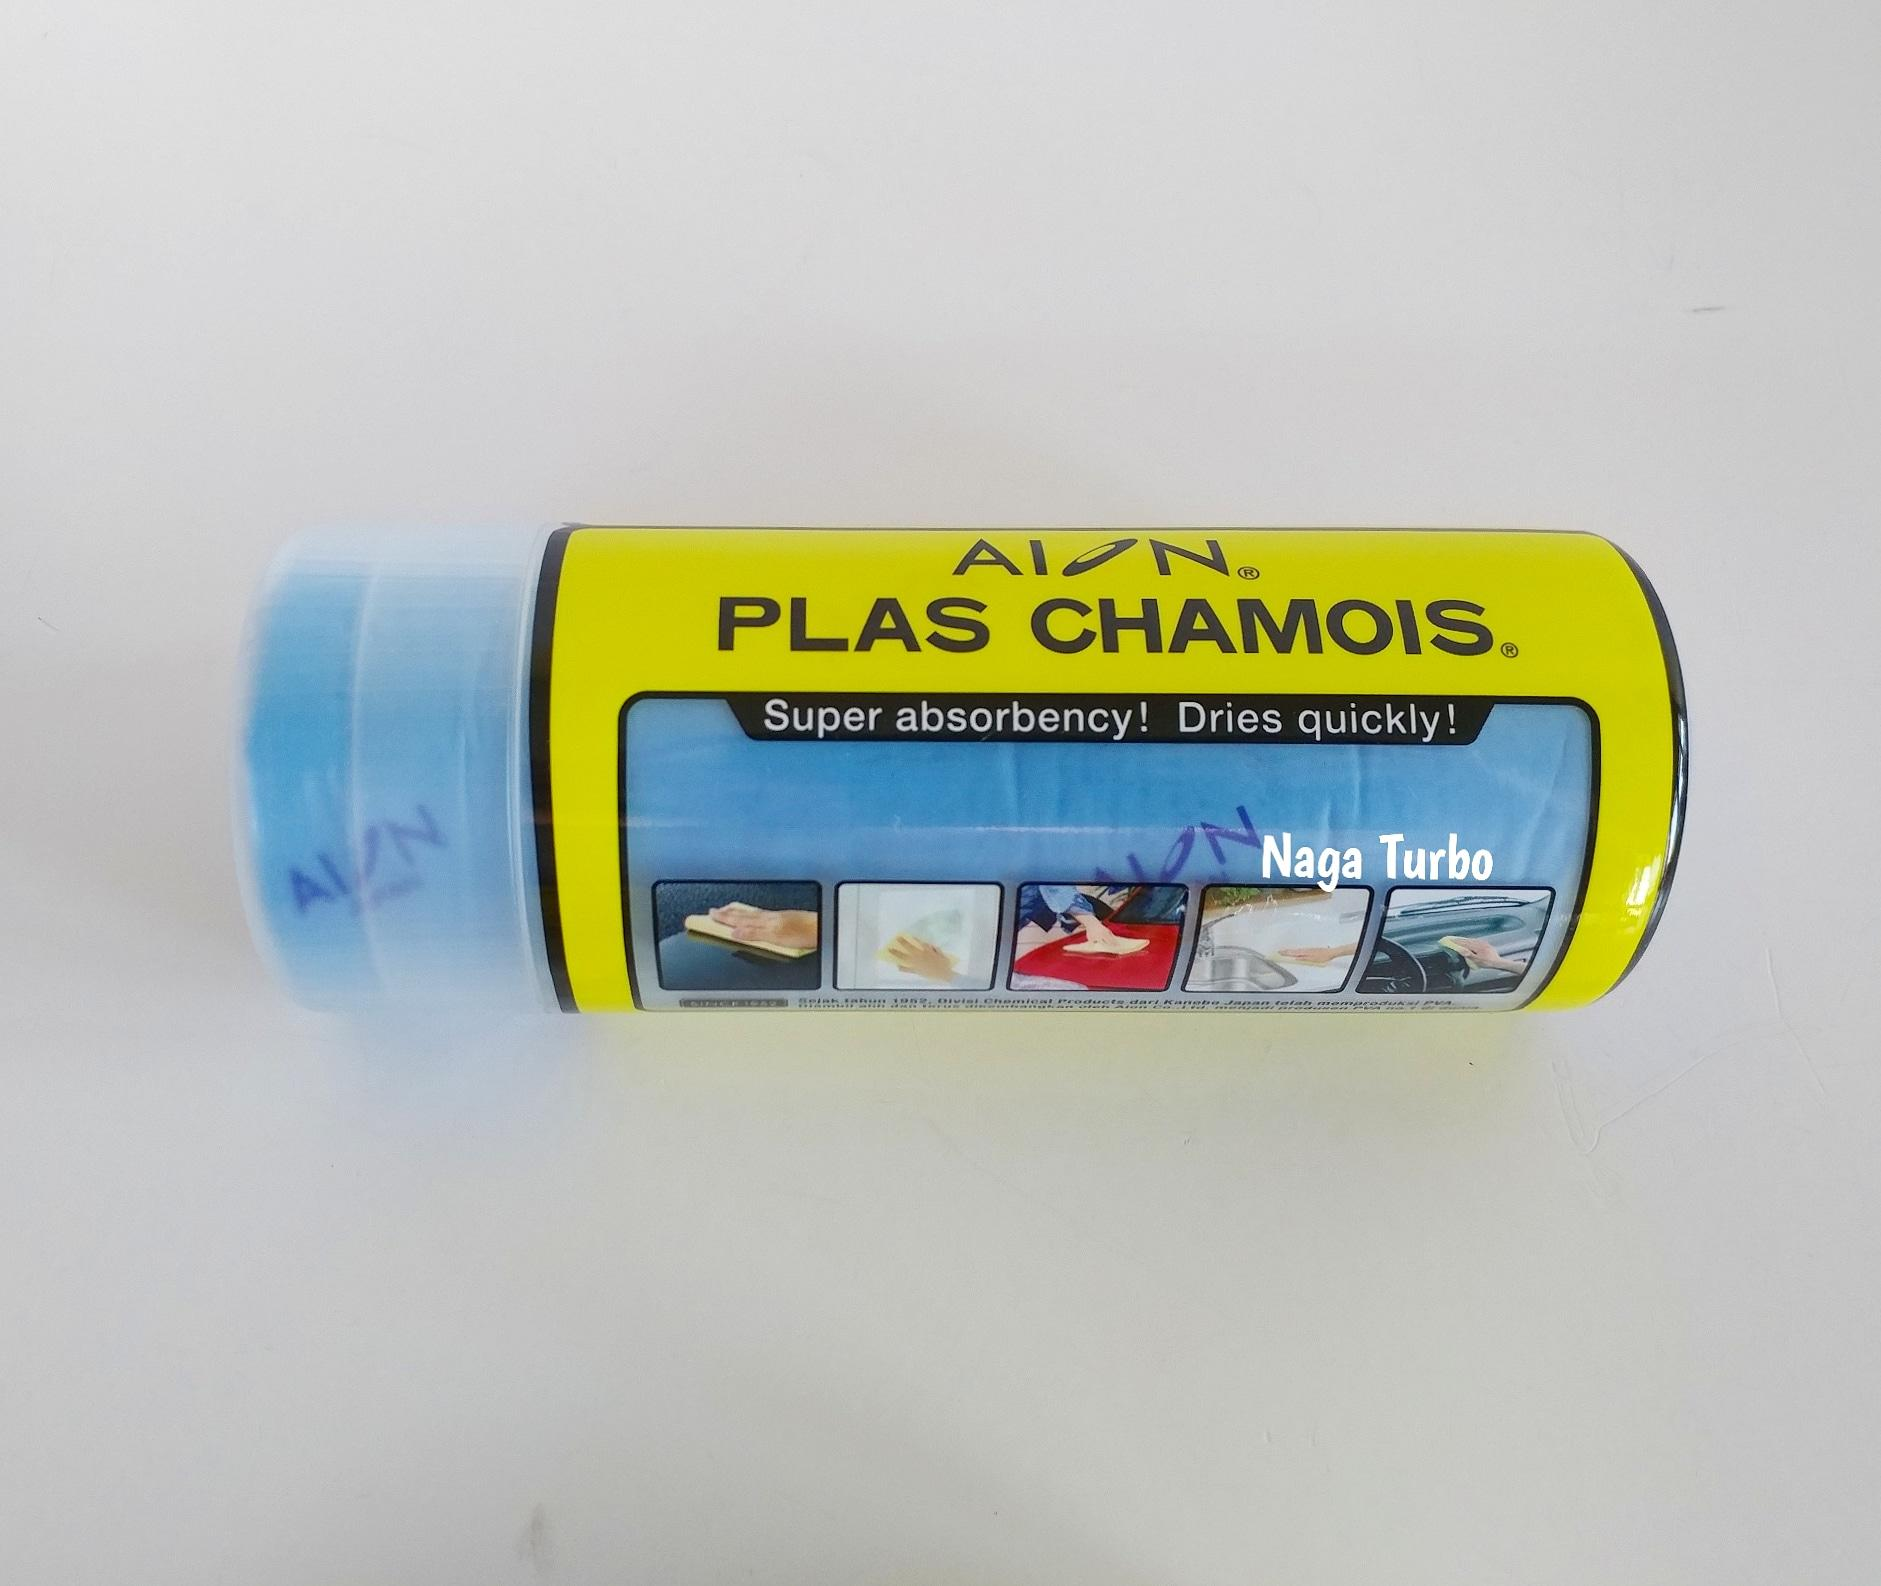 ORIGINAL!! Kanebo AION - Plas Chamois Lap Aion mobil Kanebo Made in Japan